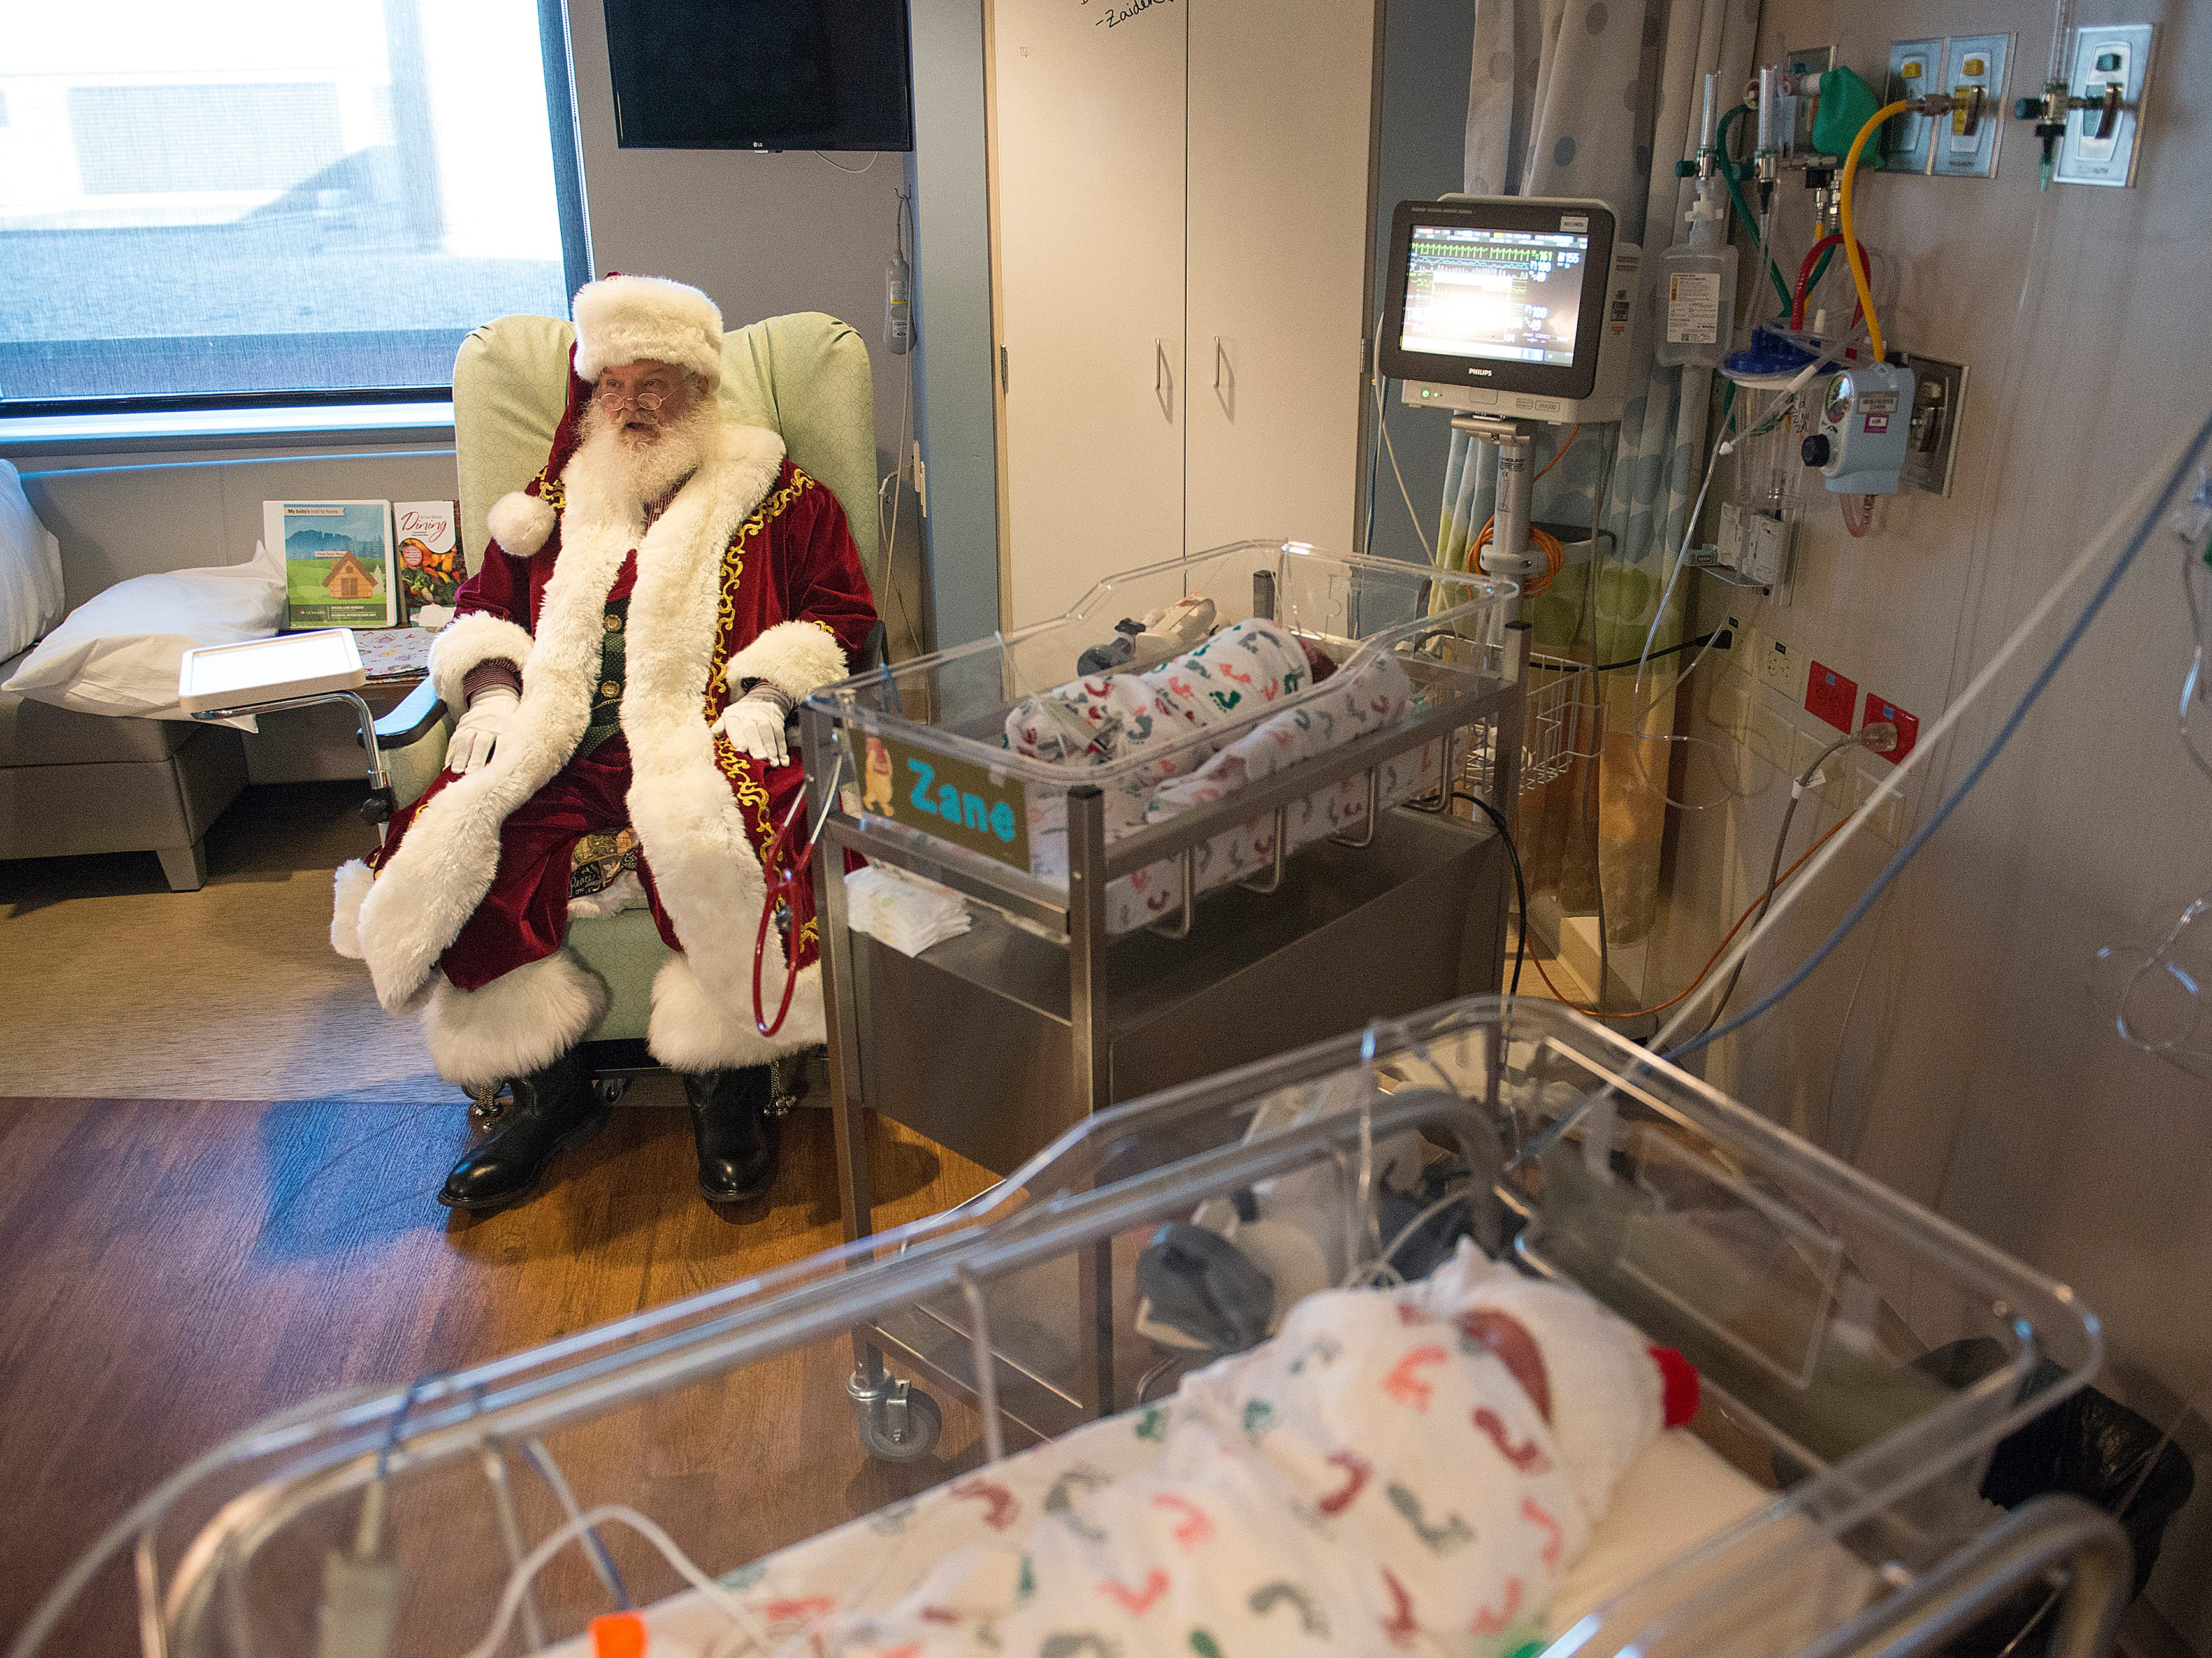 Santa Claus, portrayed by Moose Shattuck, takes a seat next to Zane and Zaiden as he visits the neonatal intensive care unit at Poudre Valley Hospital on Tuesday December 18, 2018.